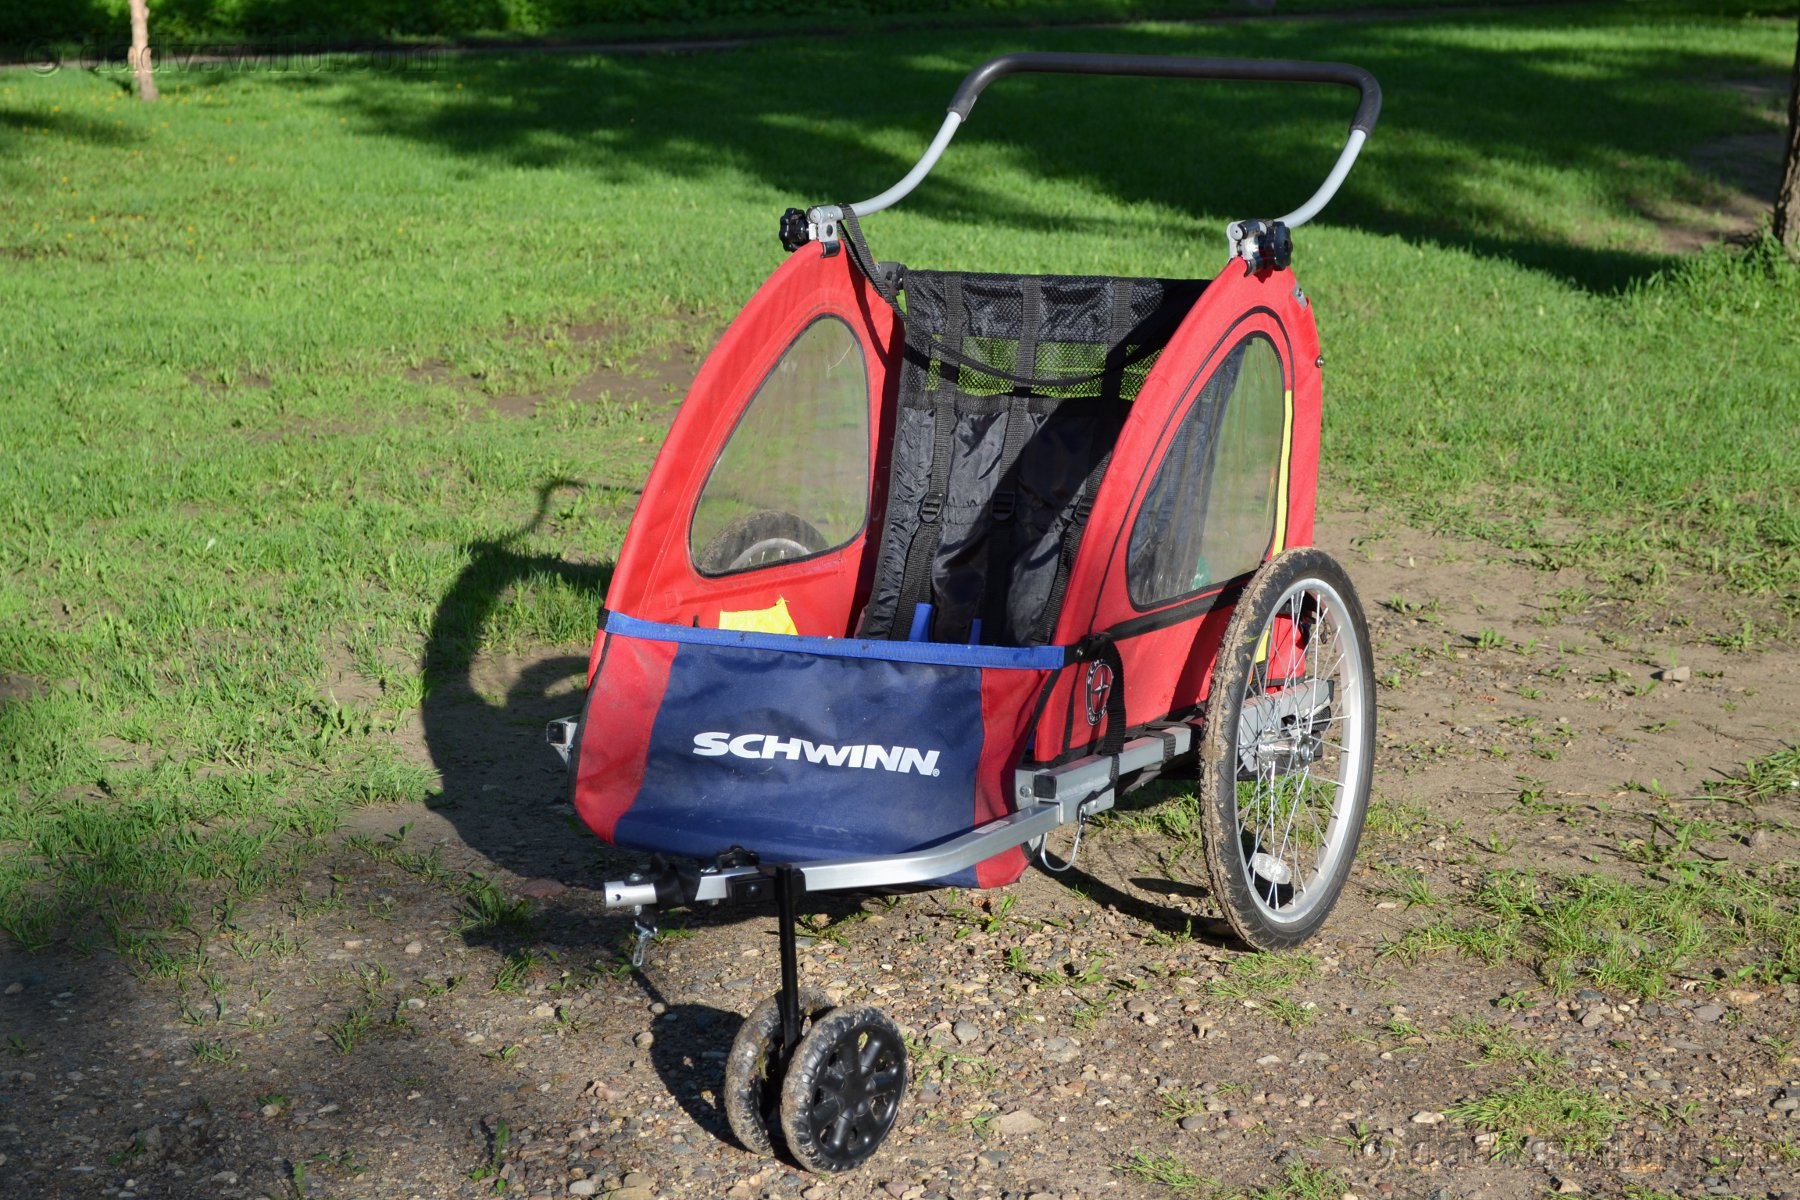 Bike Trailer Buyer's Guide – Dad vs Wild